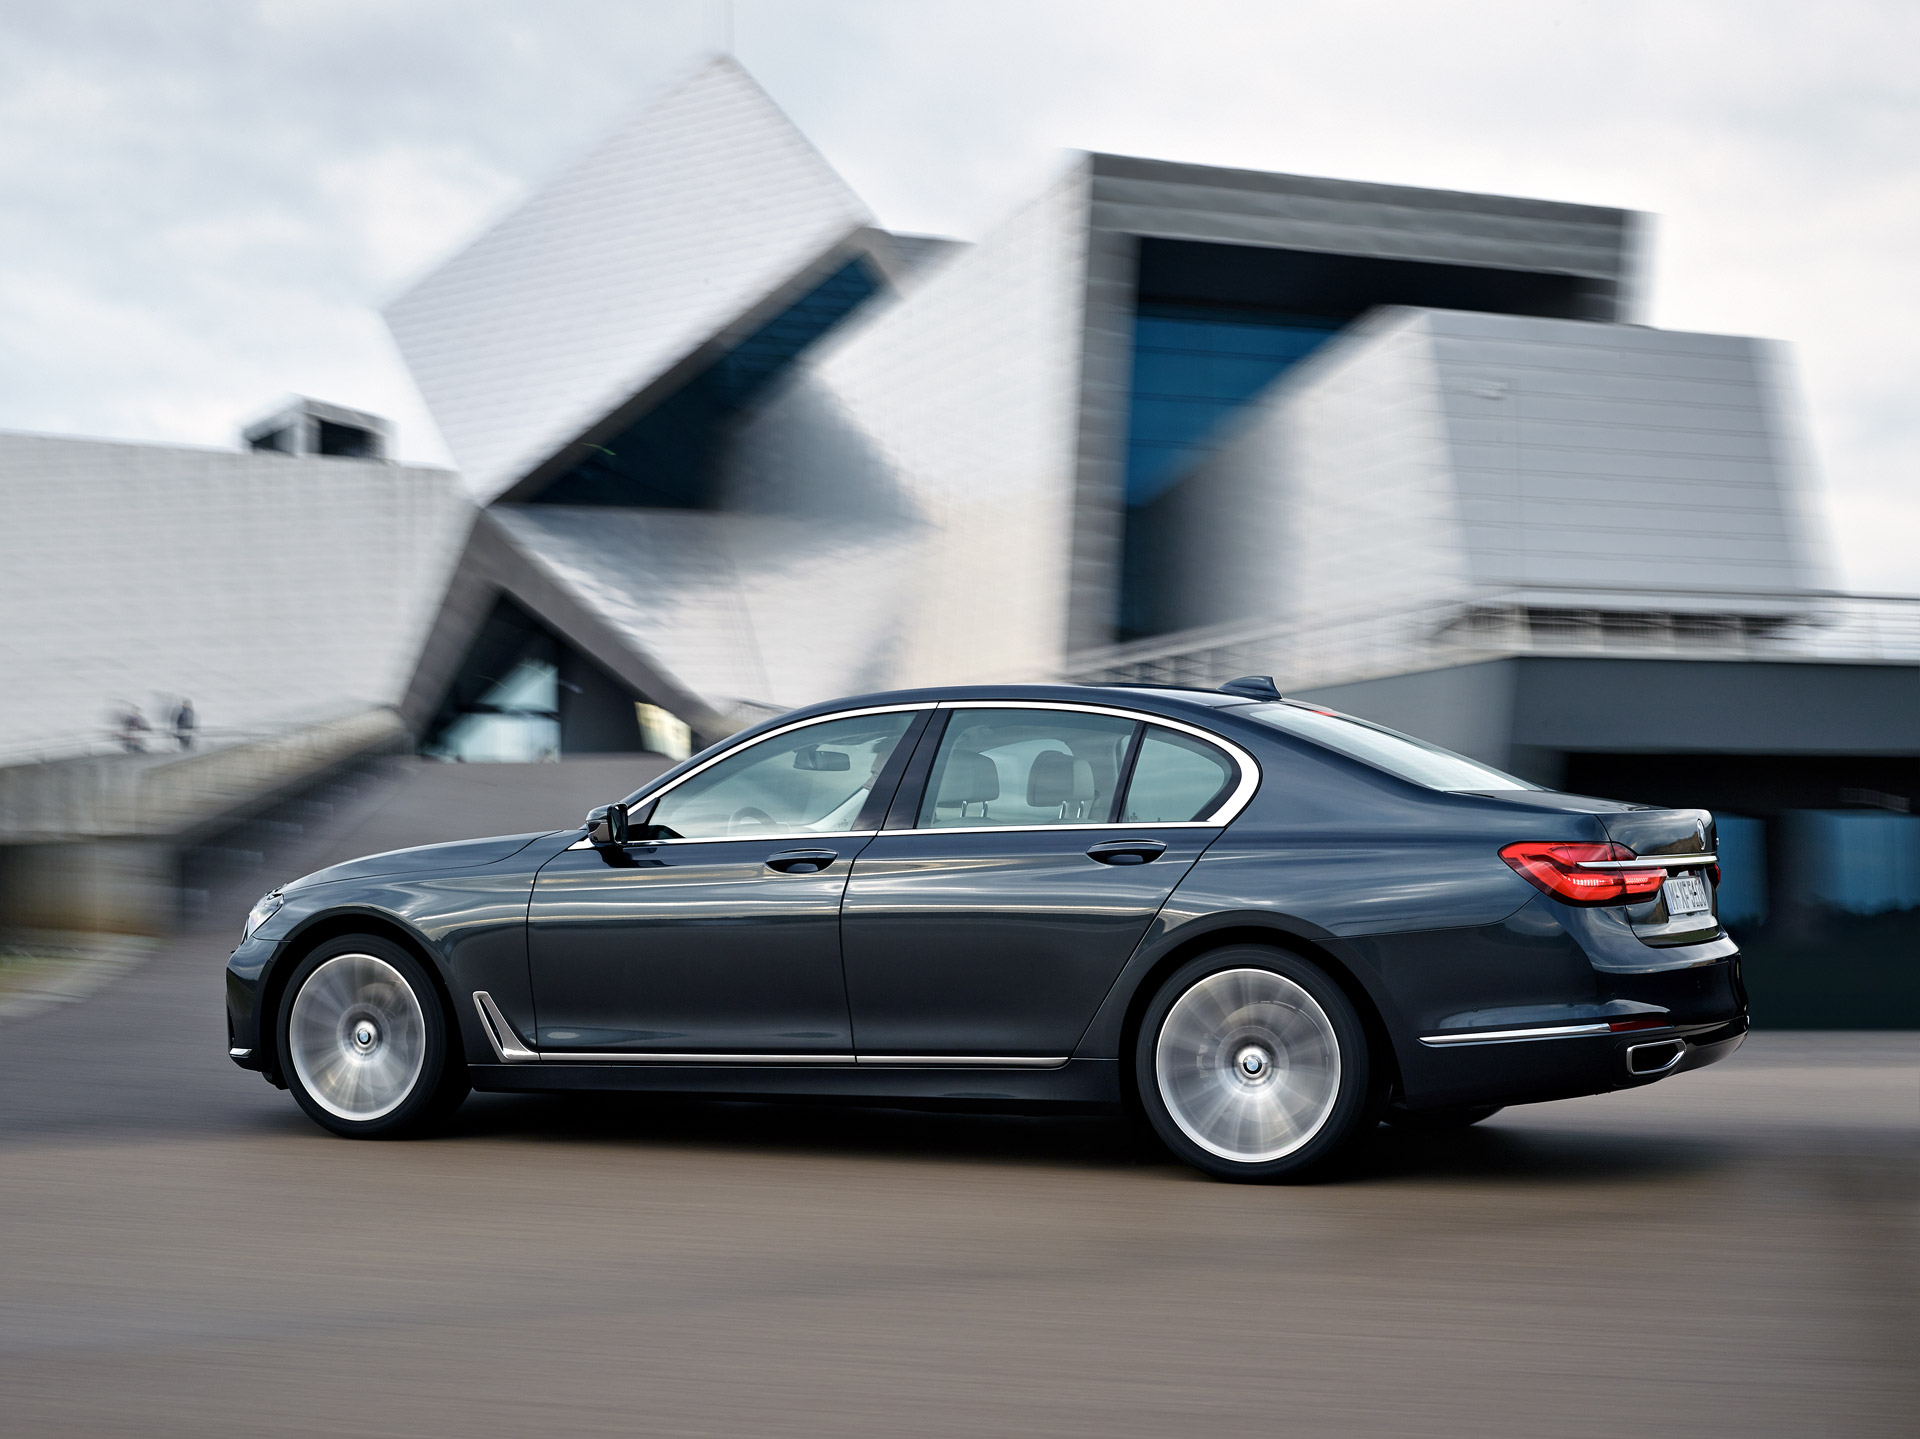 New Bmw 7 Series >> Watch The 2016 Bmw 7 Series On The Move In New Video